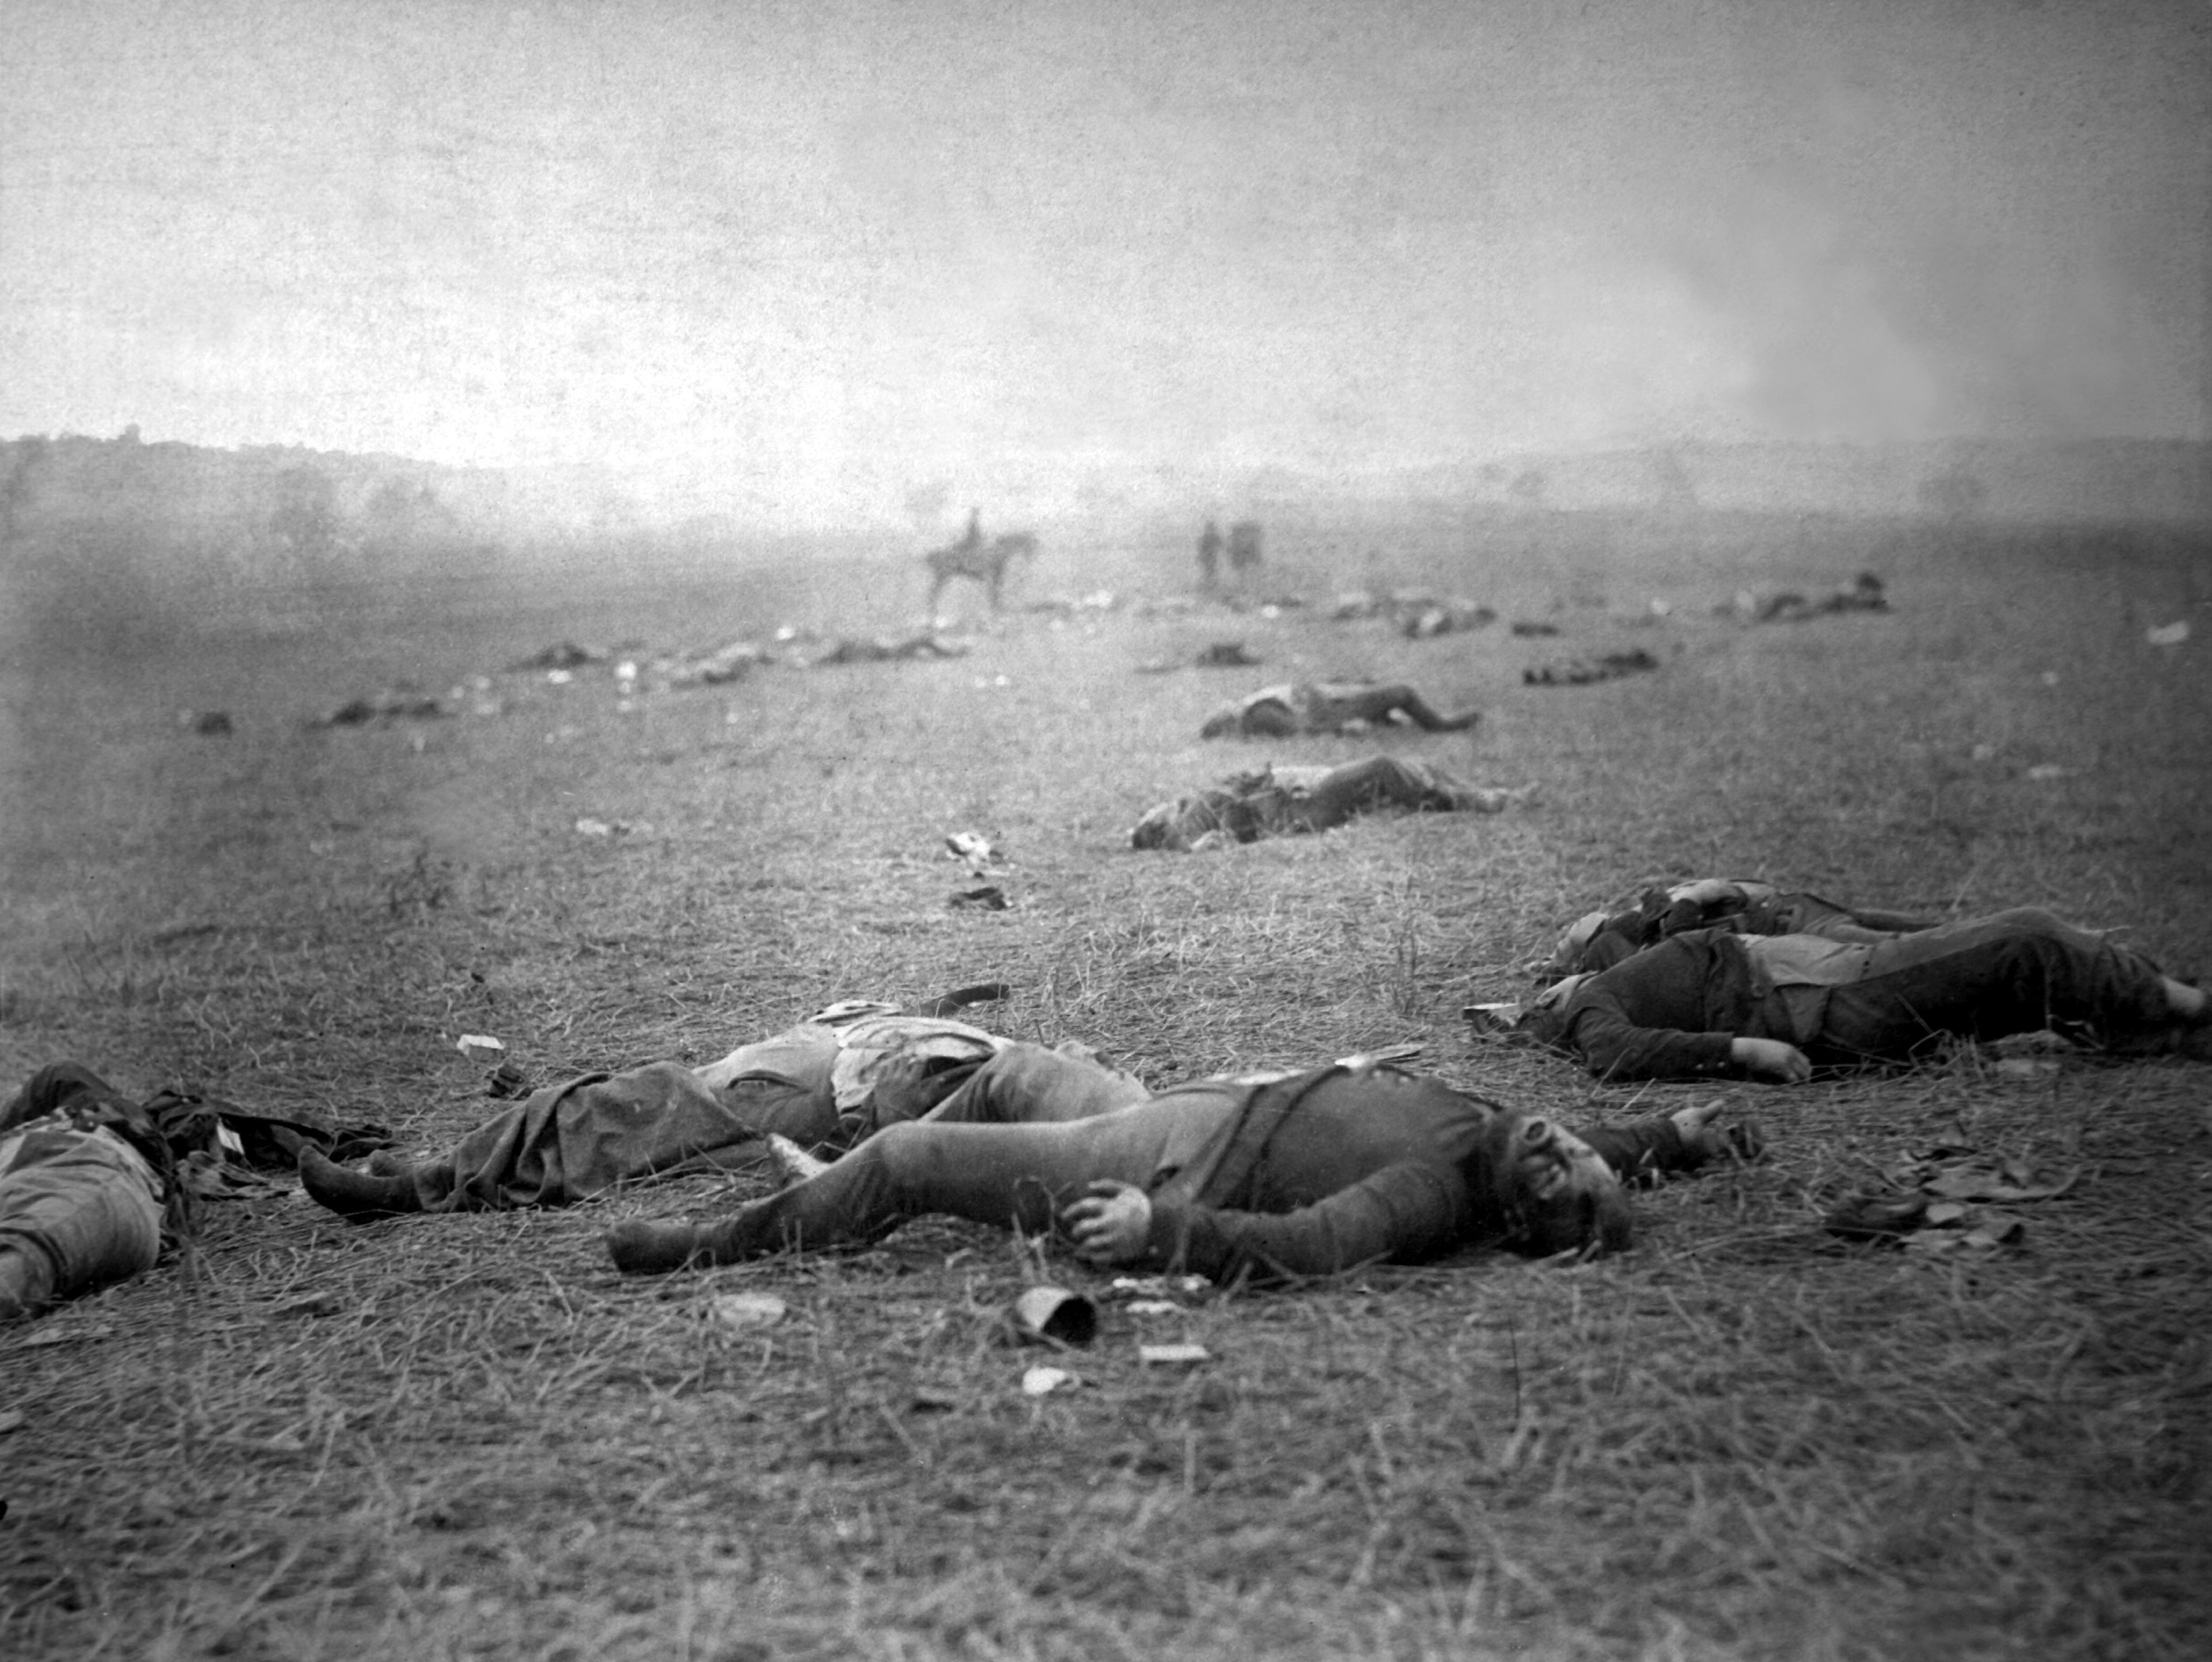 https://i0.wp.com/upload.wikimedia.org/wikipedia/commons/3/33/Battle_of_Gettysburg.jpg